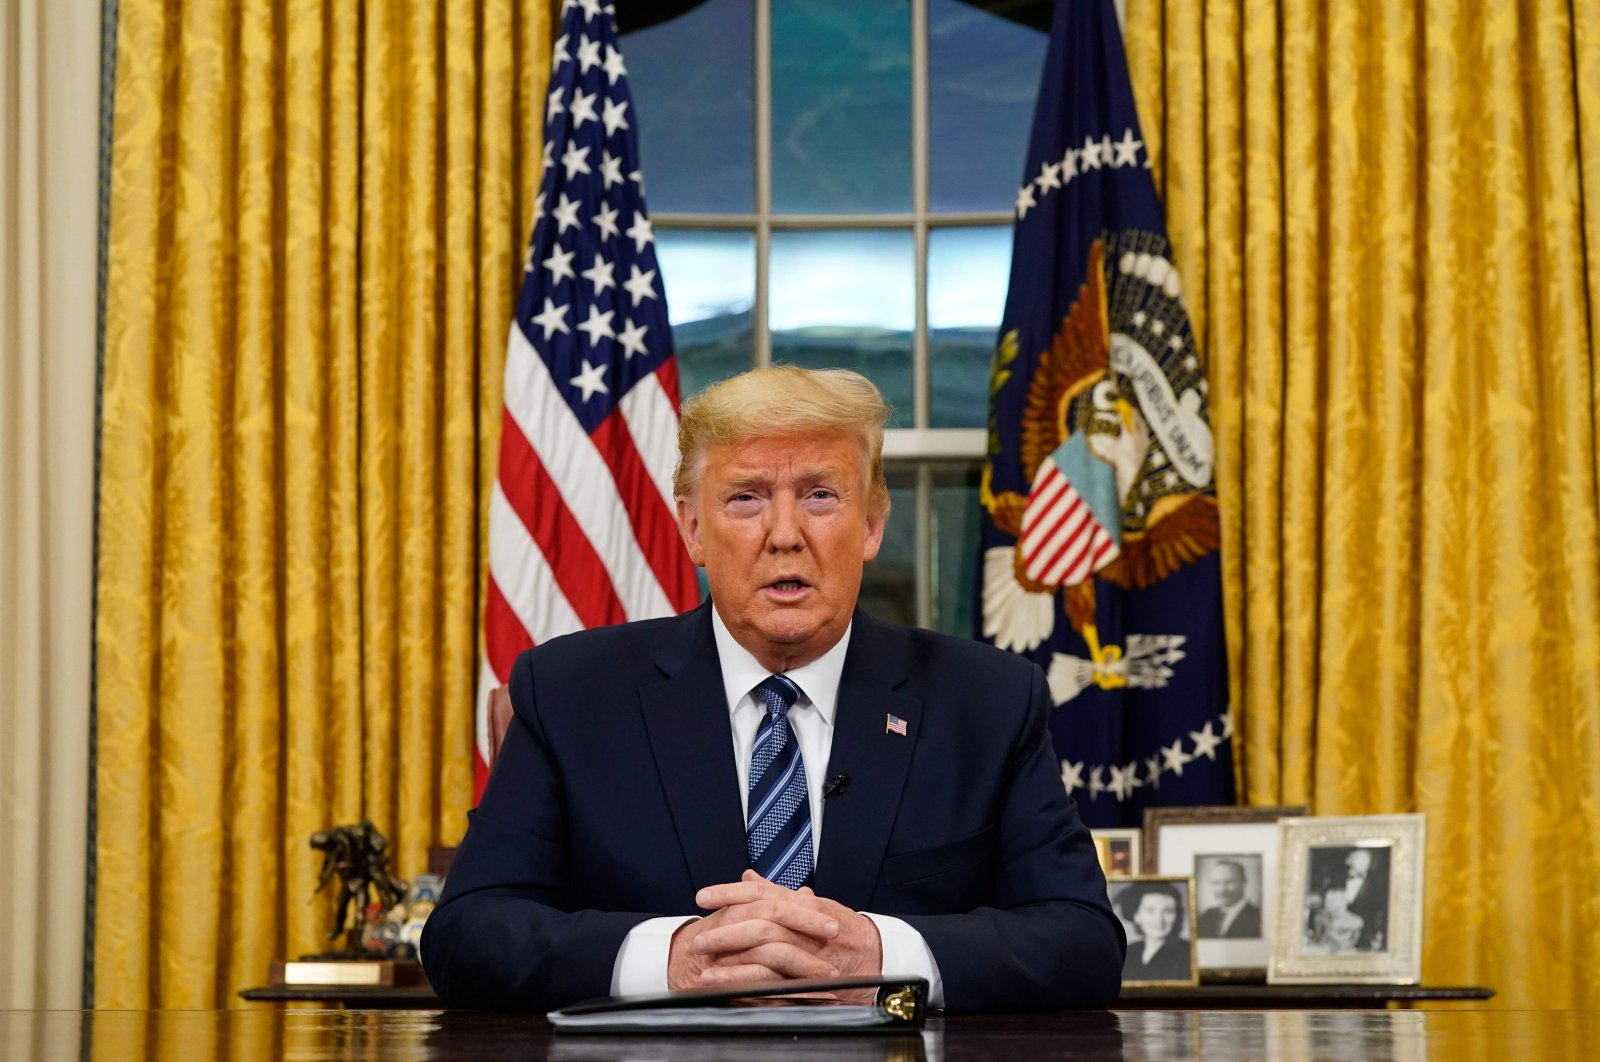 U.S. President Donald Trump addresses the nation from the Oval Office, Washington, D.C., March 11, 2020. (AFP Photo)